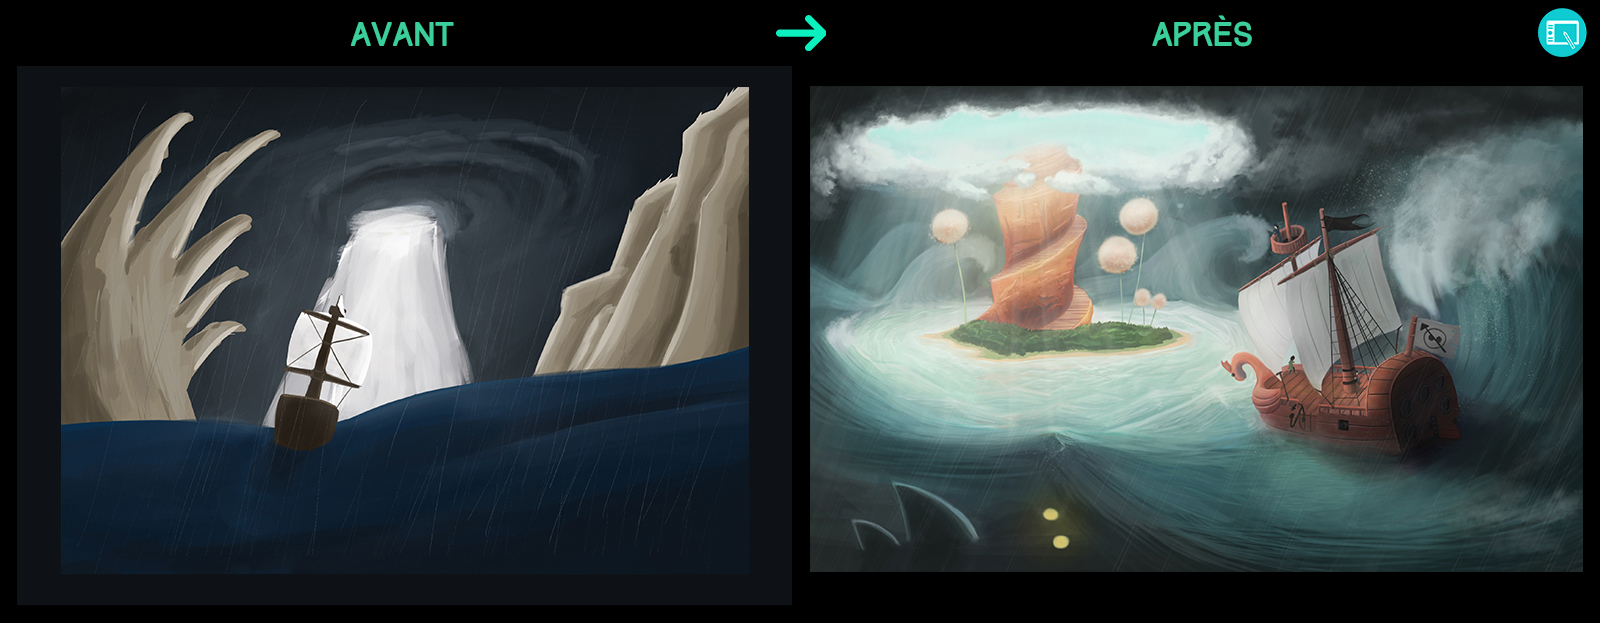 Progression en digital painting de link523